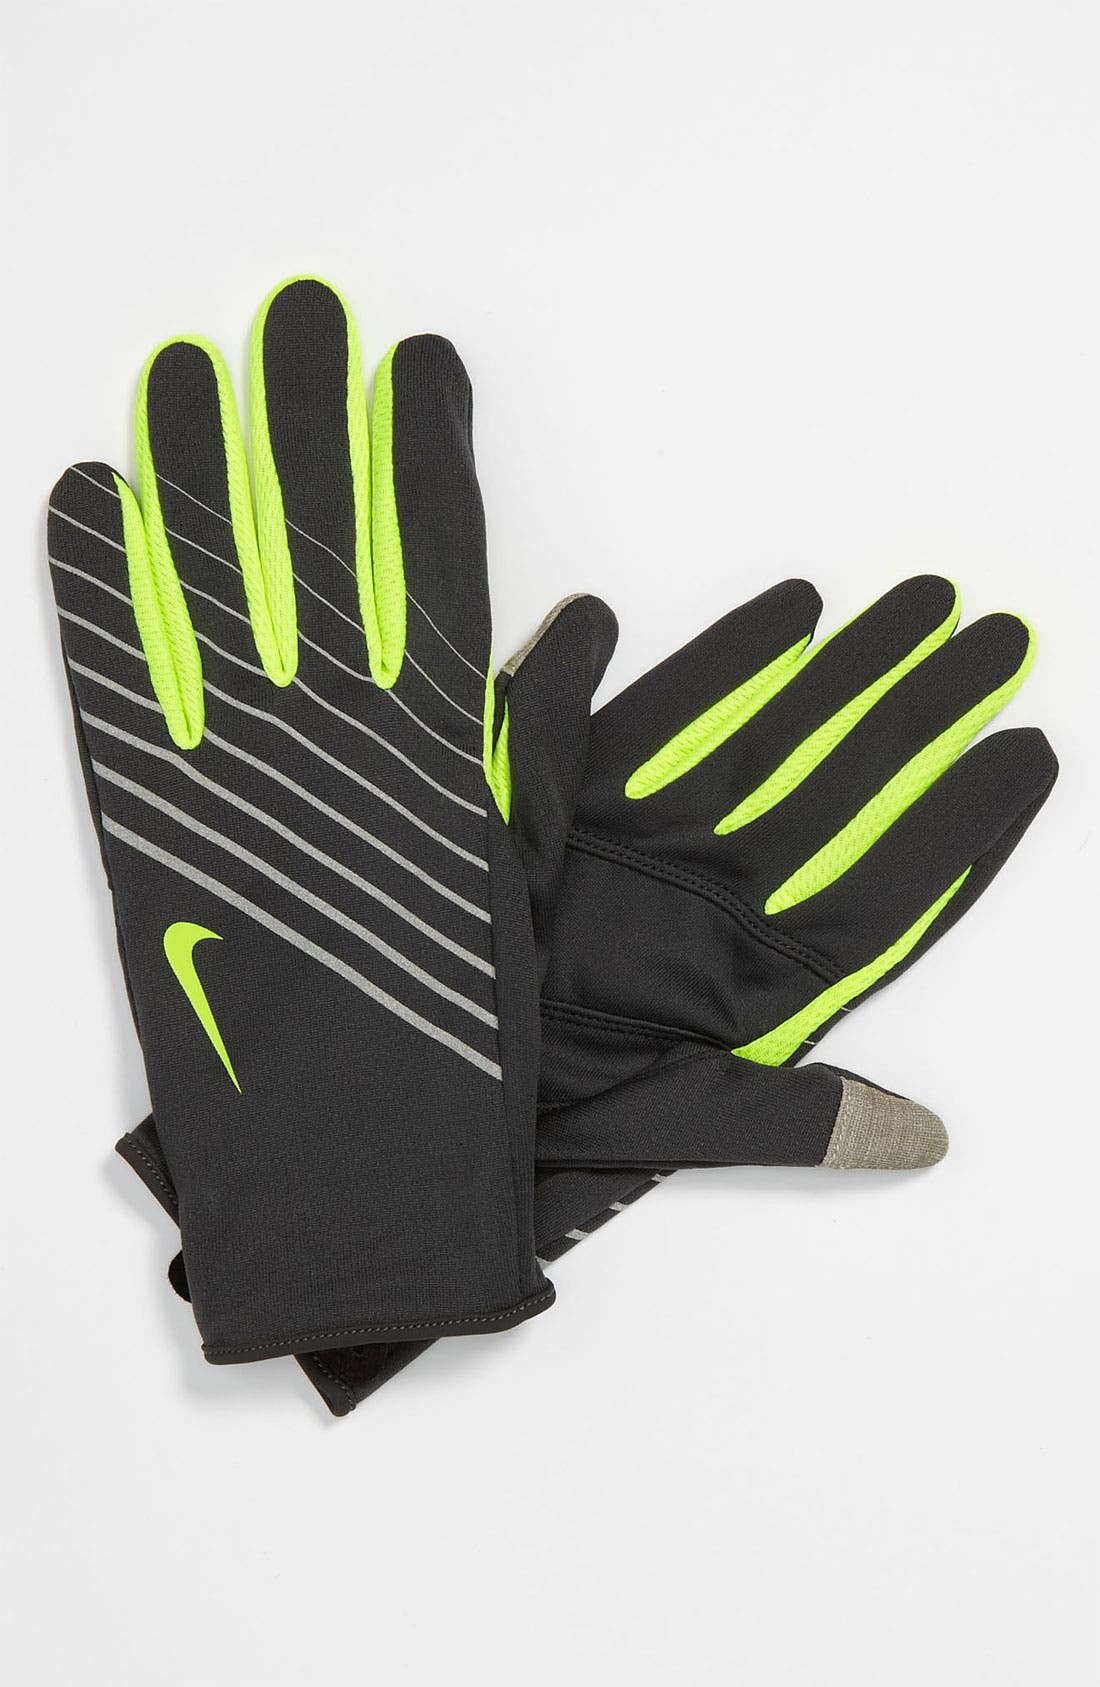 Alternate Image 1 Selected - Nike 'Tech' Lightweight Running Gloves